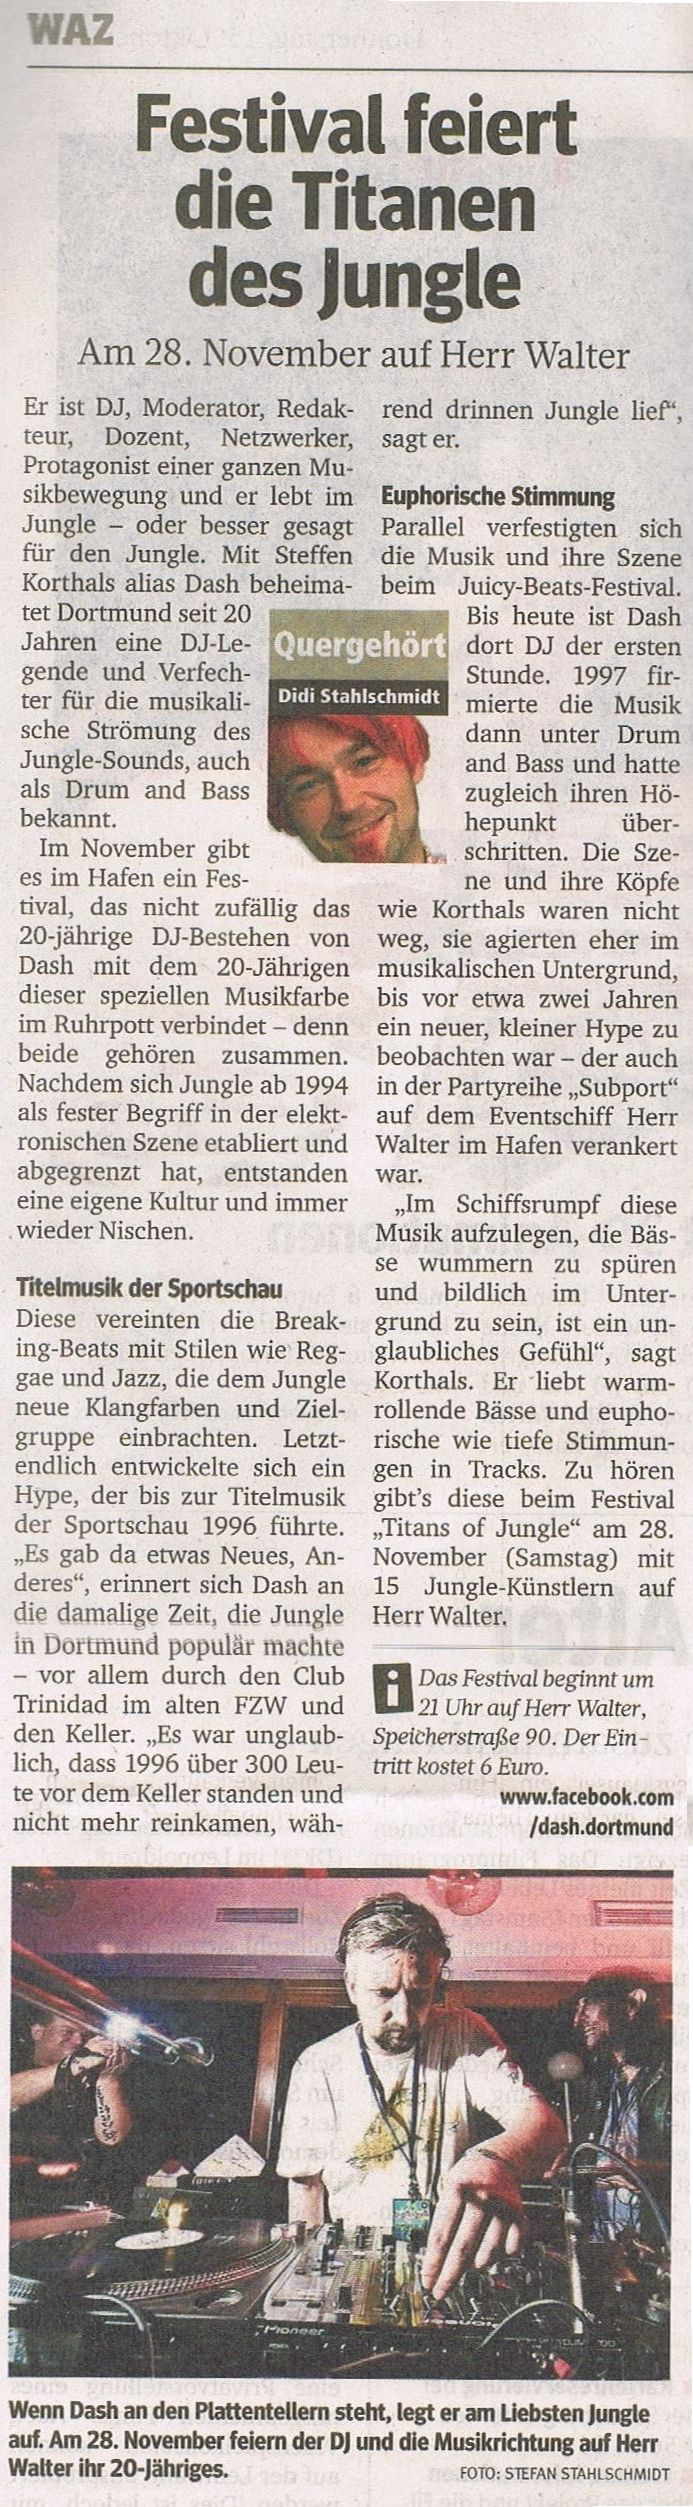 """WAZ, RN, WR and all over the place in today's newspaper => portrait of Dash / Steffen Korthals in the light of '20 years of Dash - 20 years of Jungle' plus the """"Titans of Jungle"""" festival at Herr Walter, 28.11.2015"""